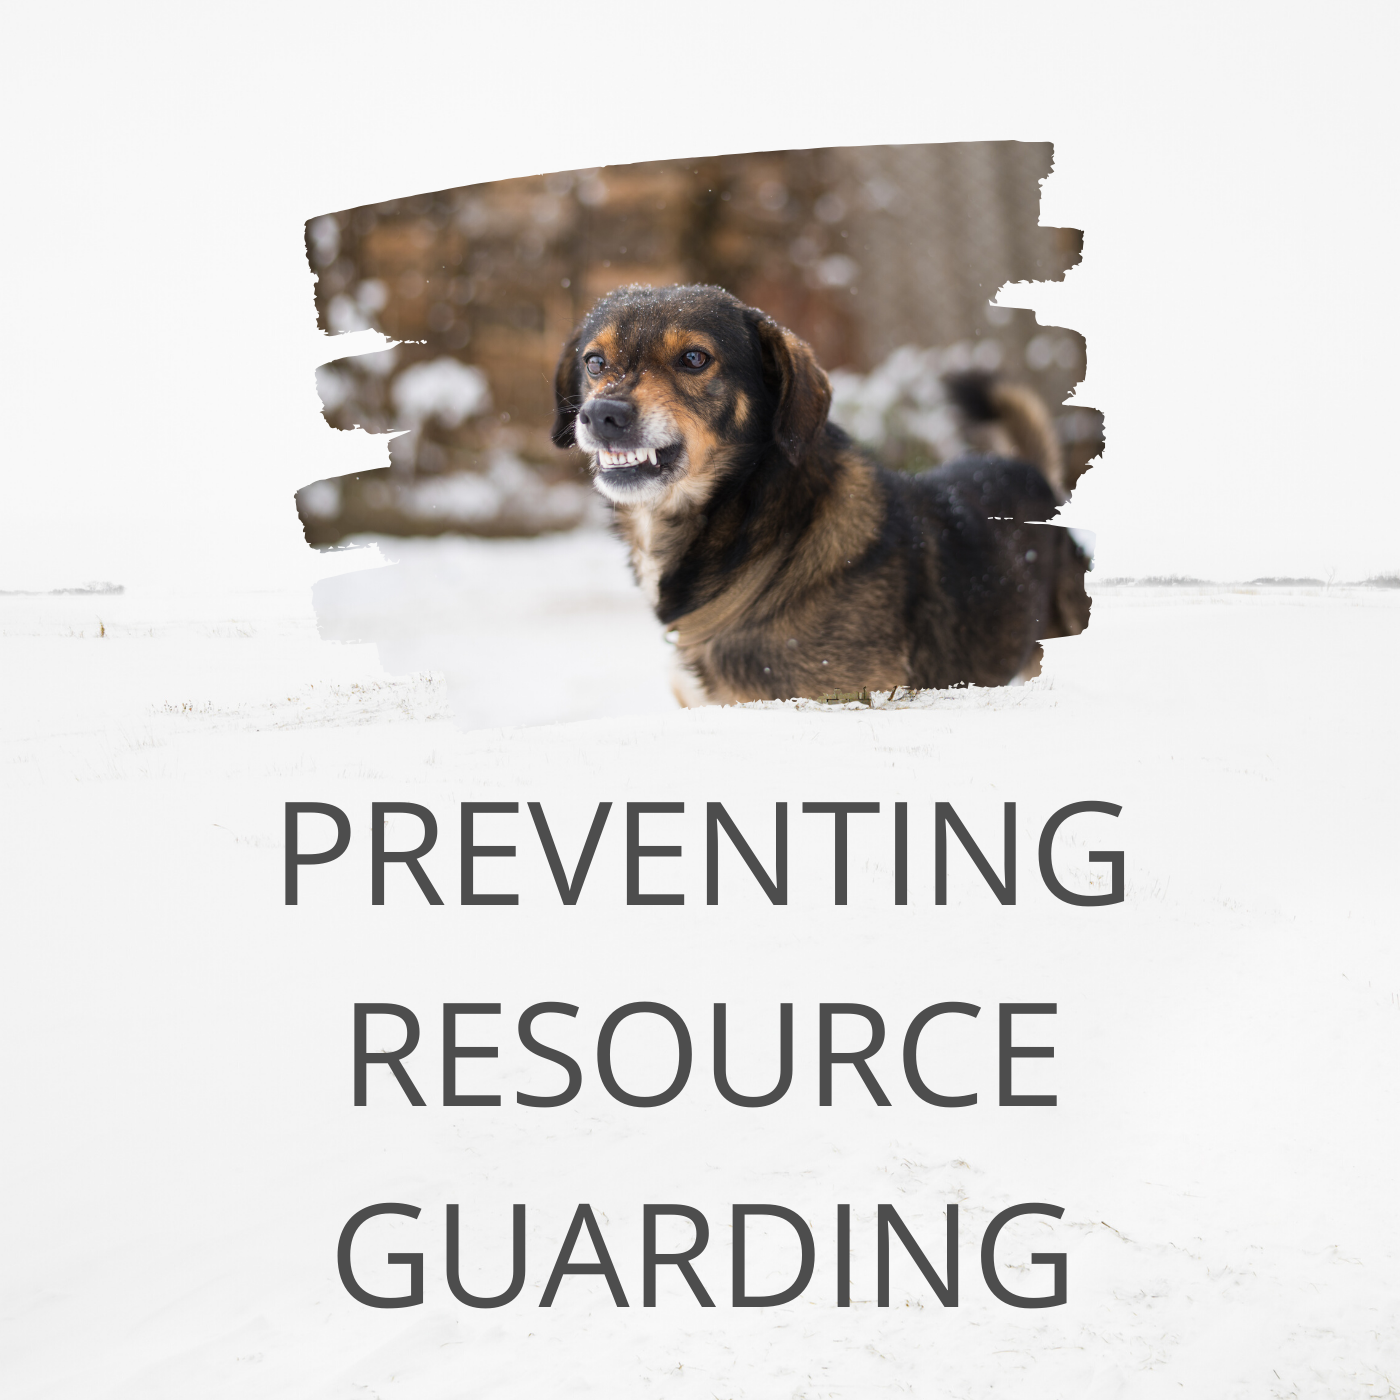 resource guarding dogs